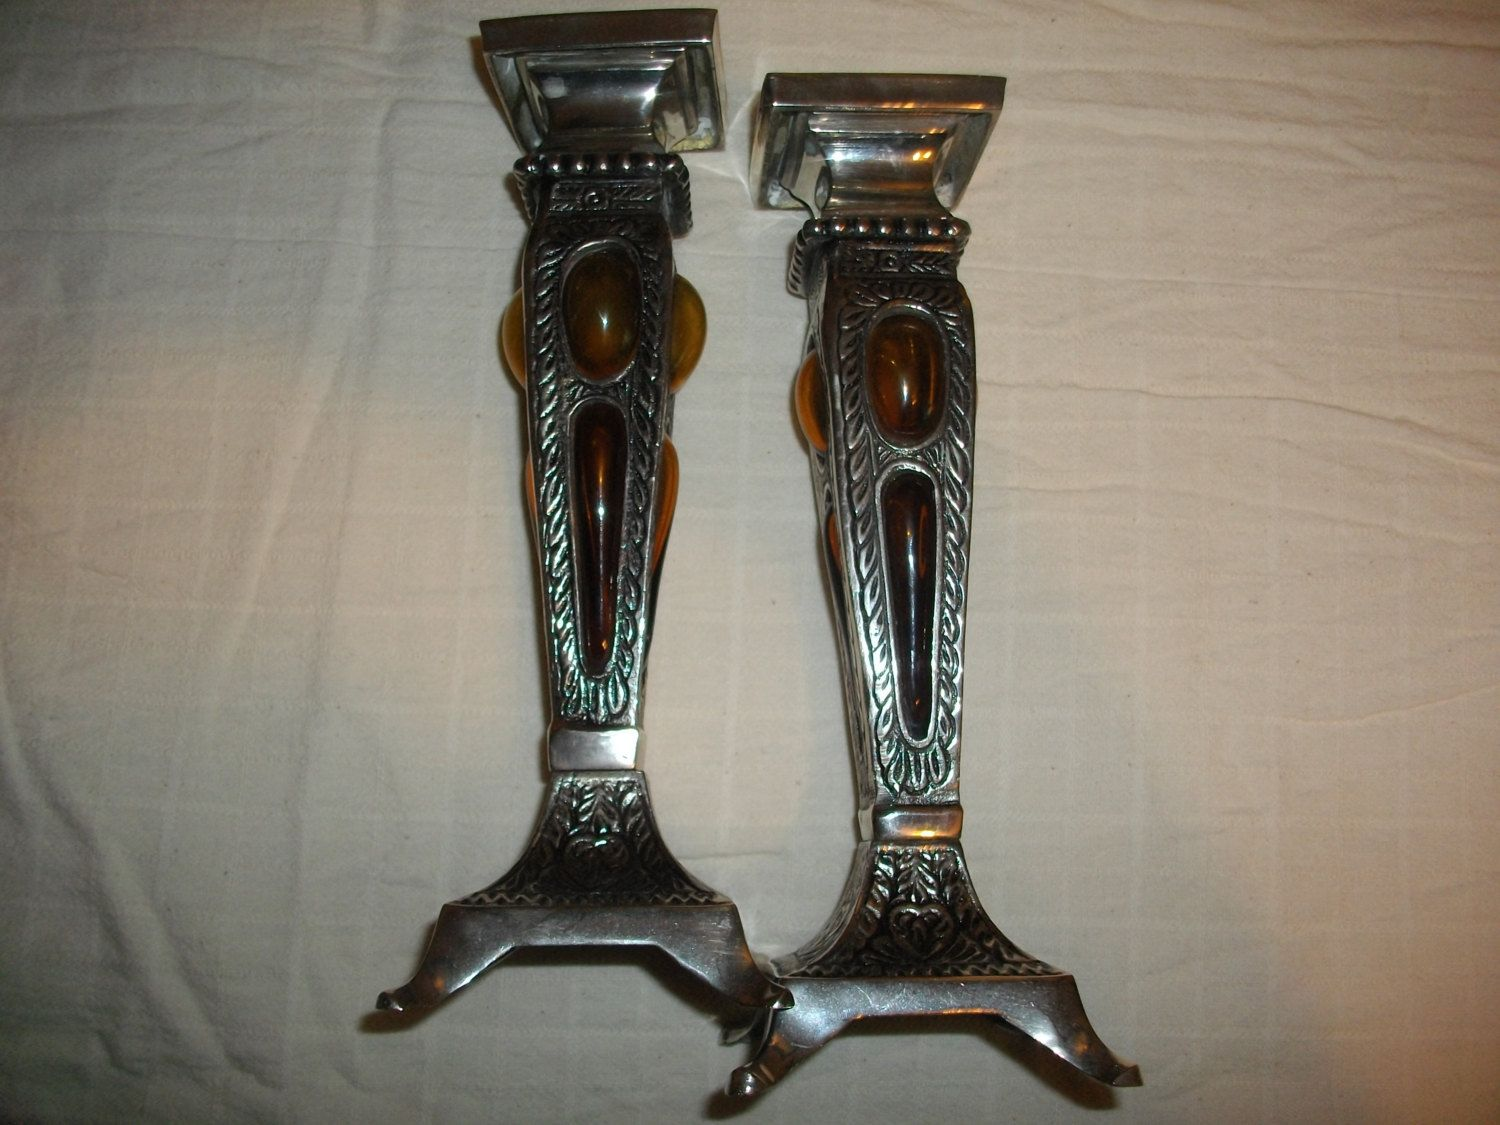 Unique Silver Candlestick Holders by TheKitchenandMore on Etsy